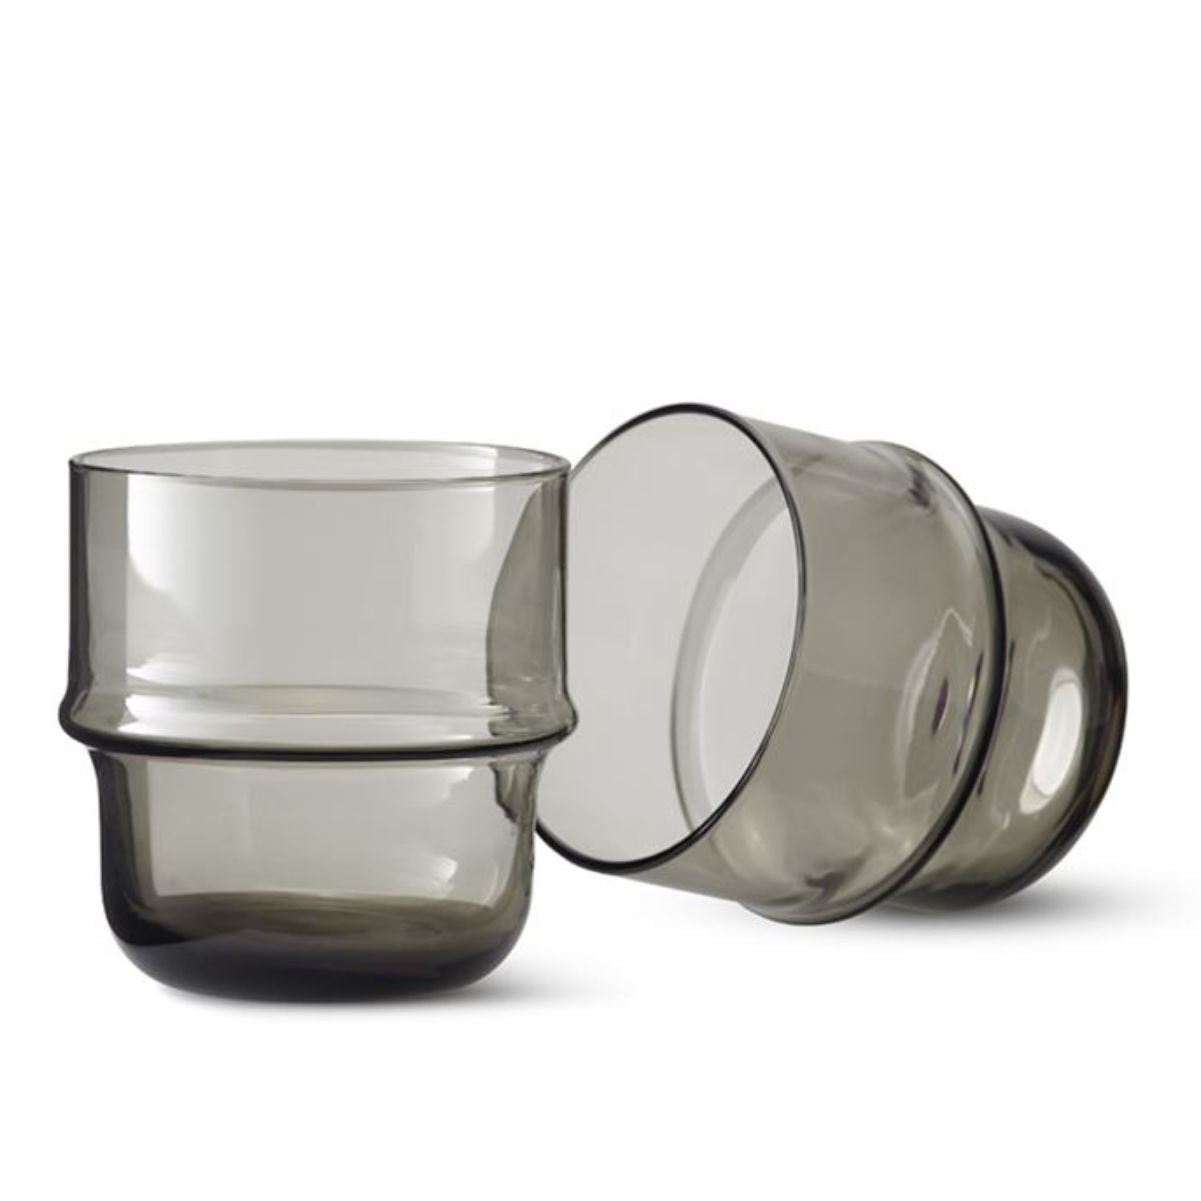 Design House Stockholm Unda glass, set of 2, grey